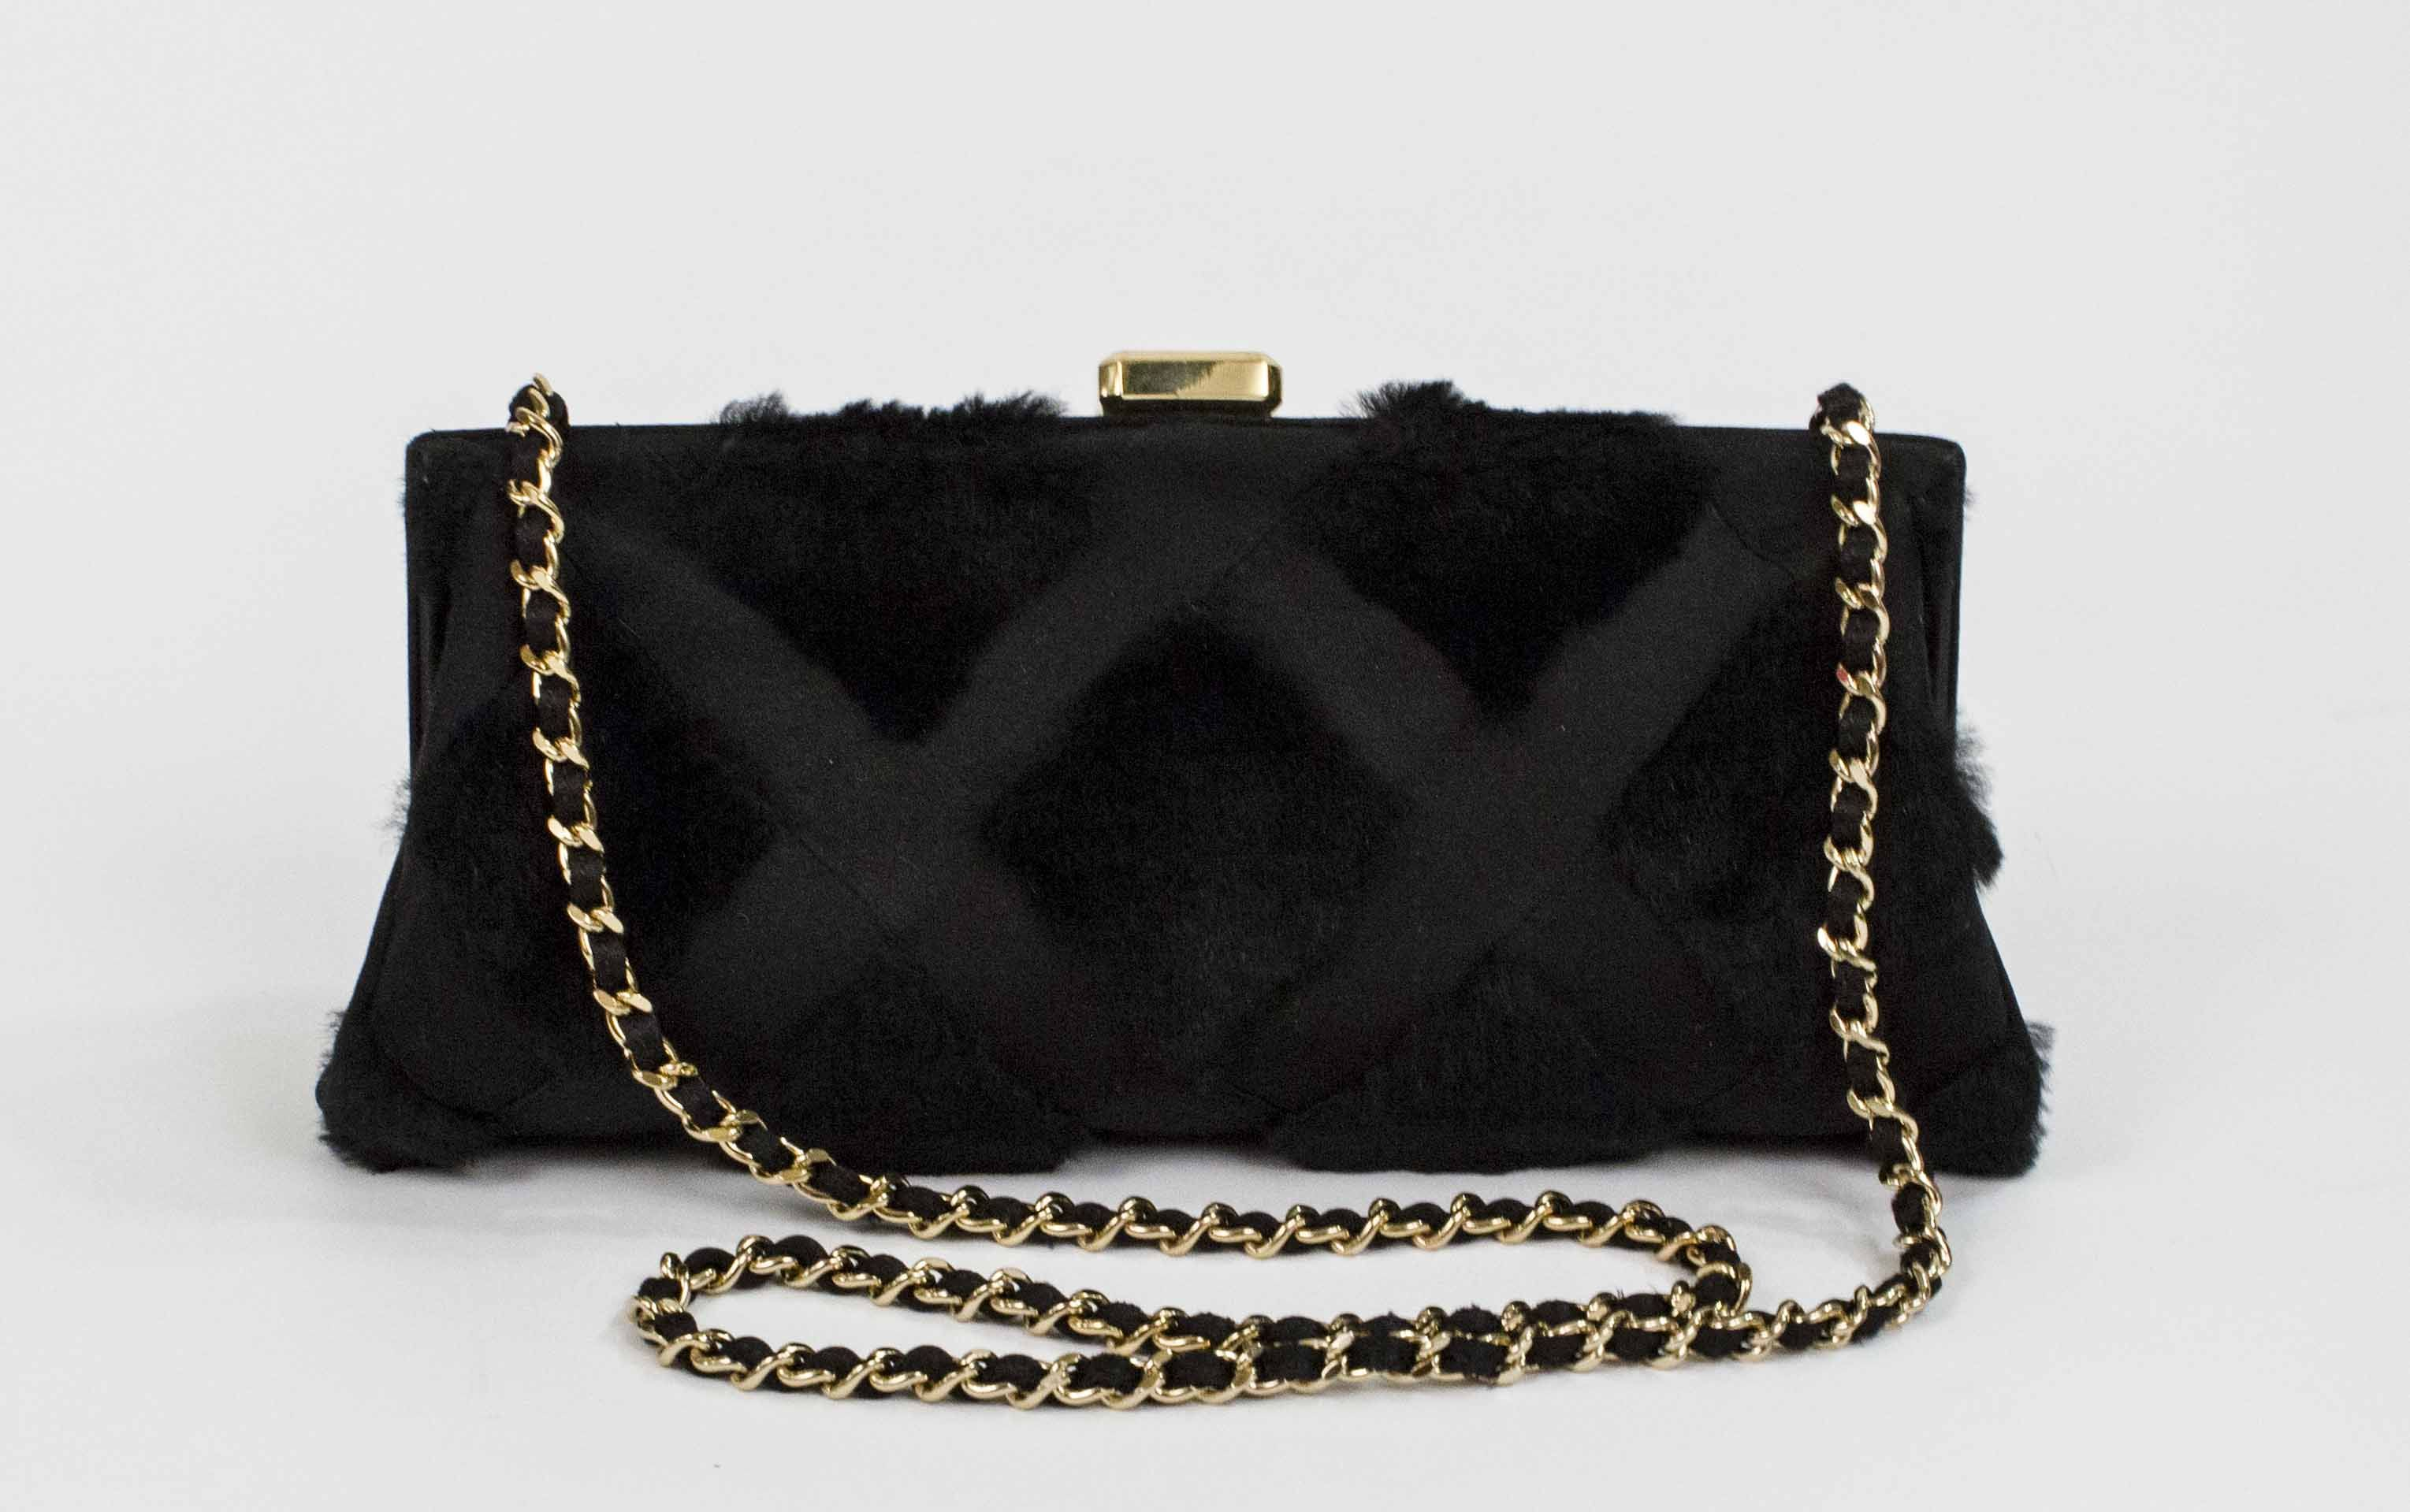 http://www.pandoradressagency.com/latest-arrivals/product/chanel-124/